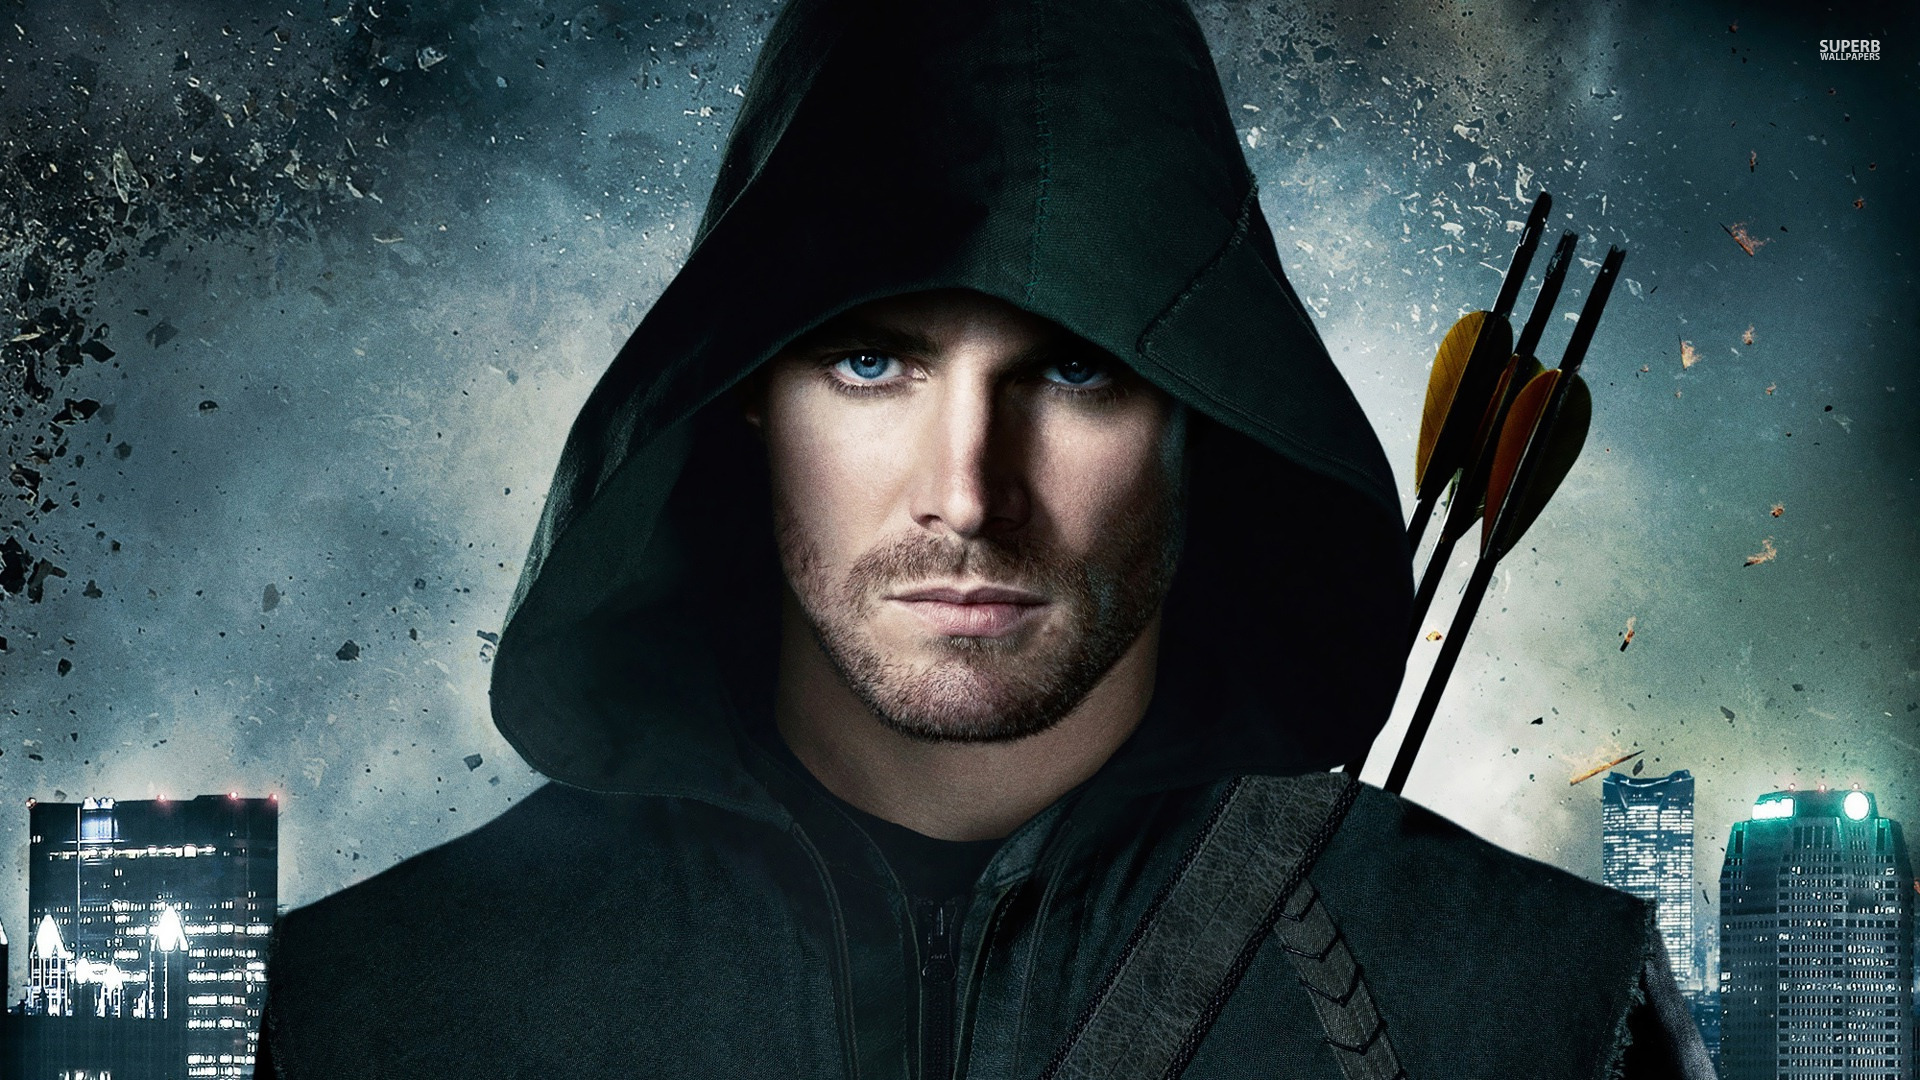 Collection of Green Arrow Wallpaper on HDWallpapers 1920x1080